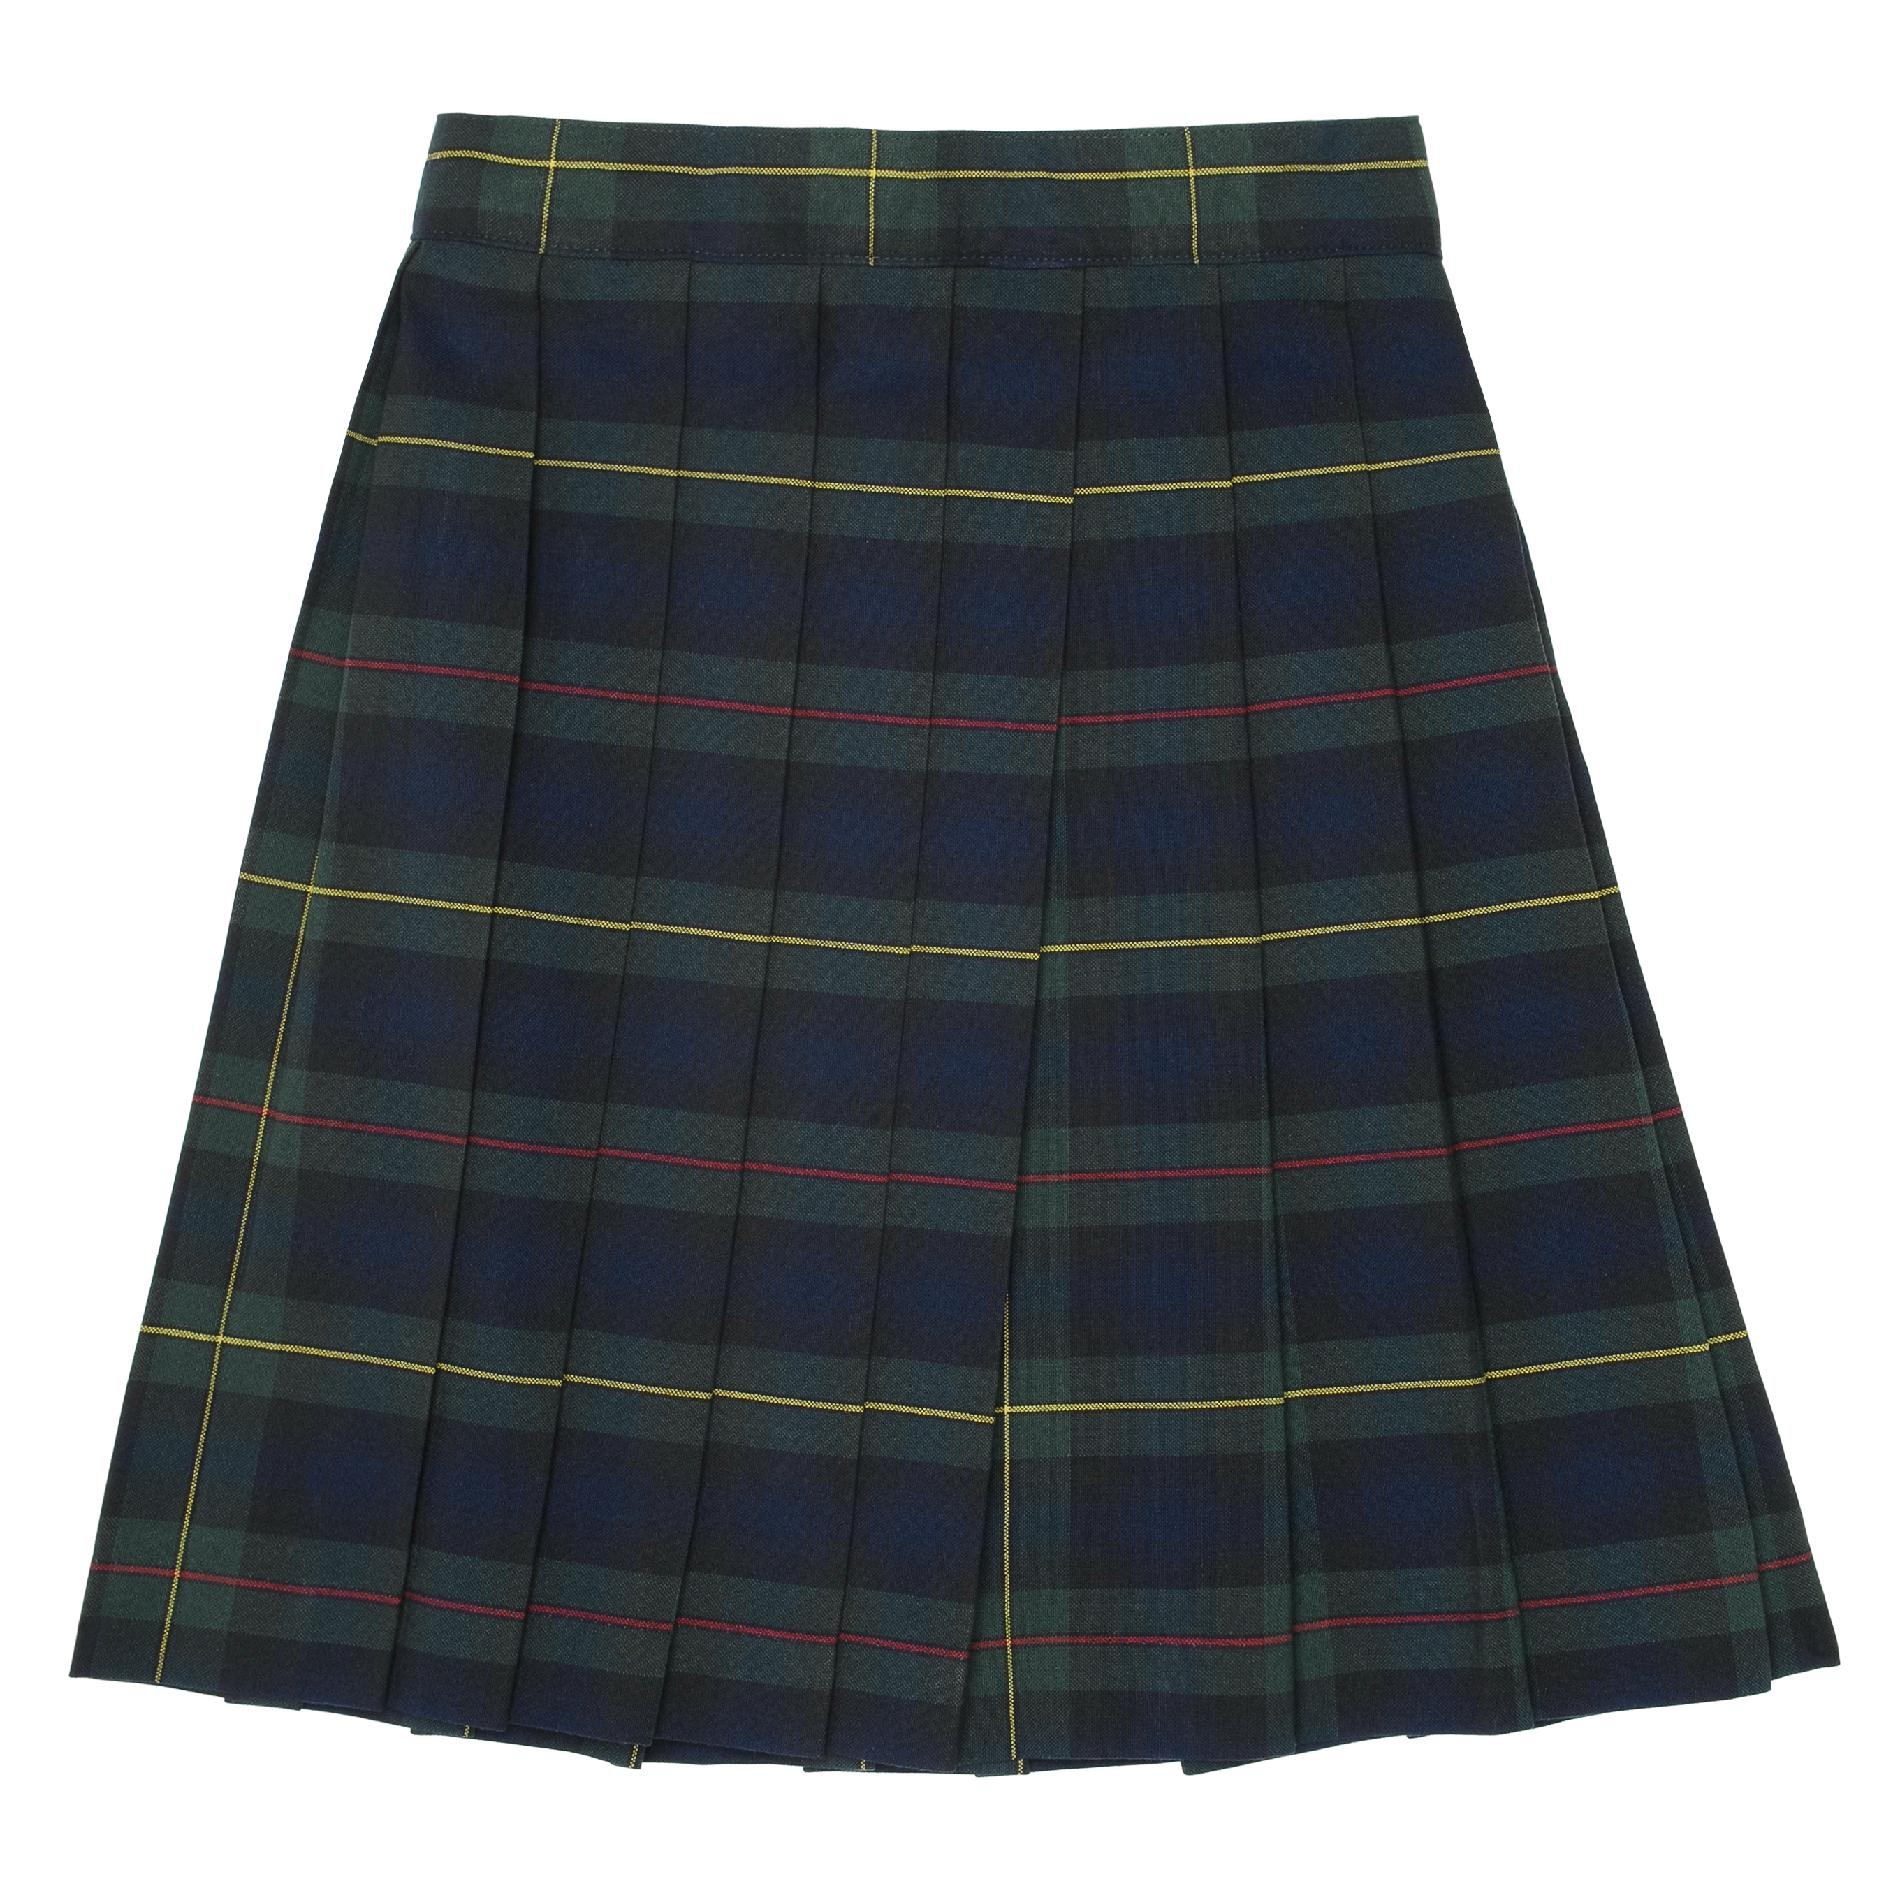 School Skirts Kmart At School By French Toast Plus Size Green Plaid Pleated Skirt